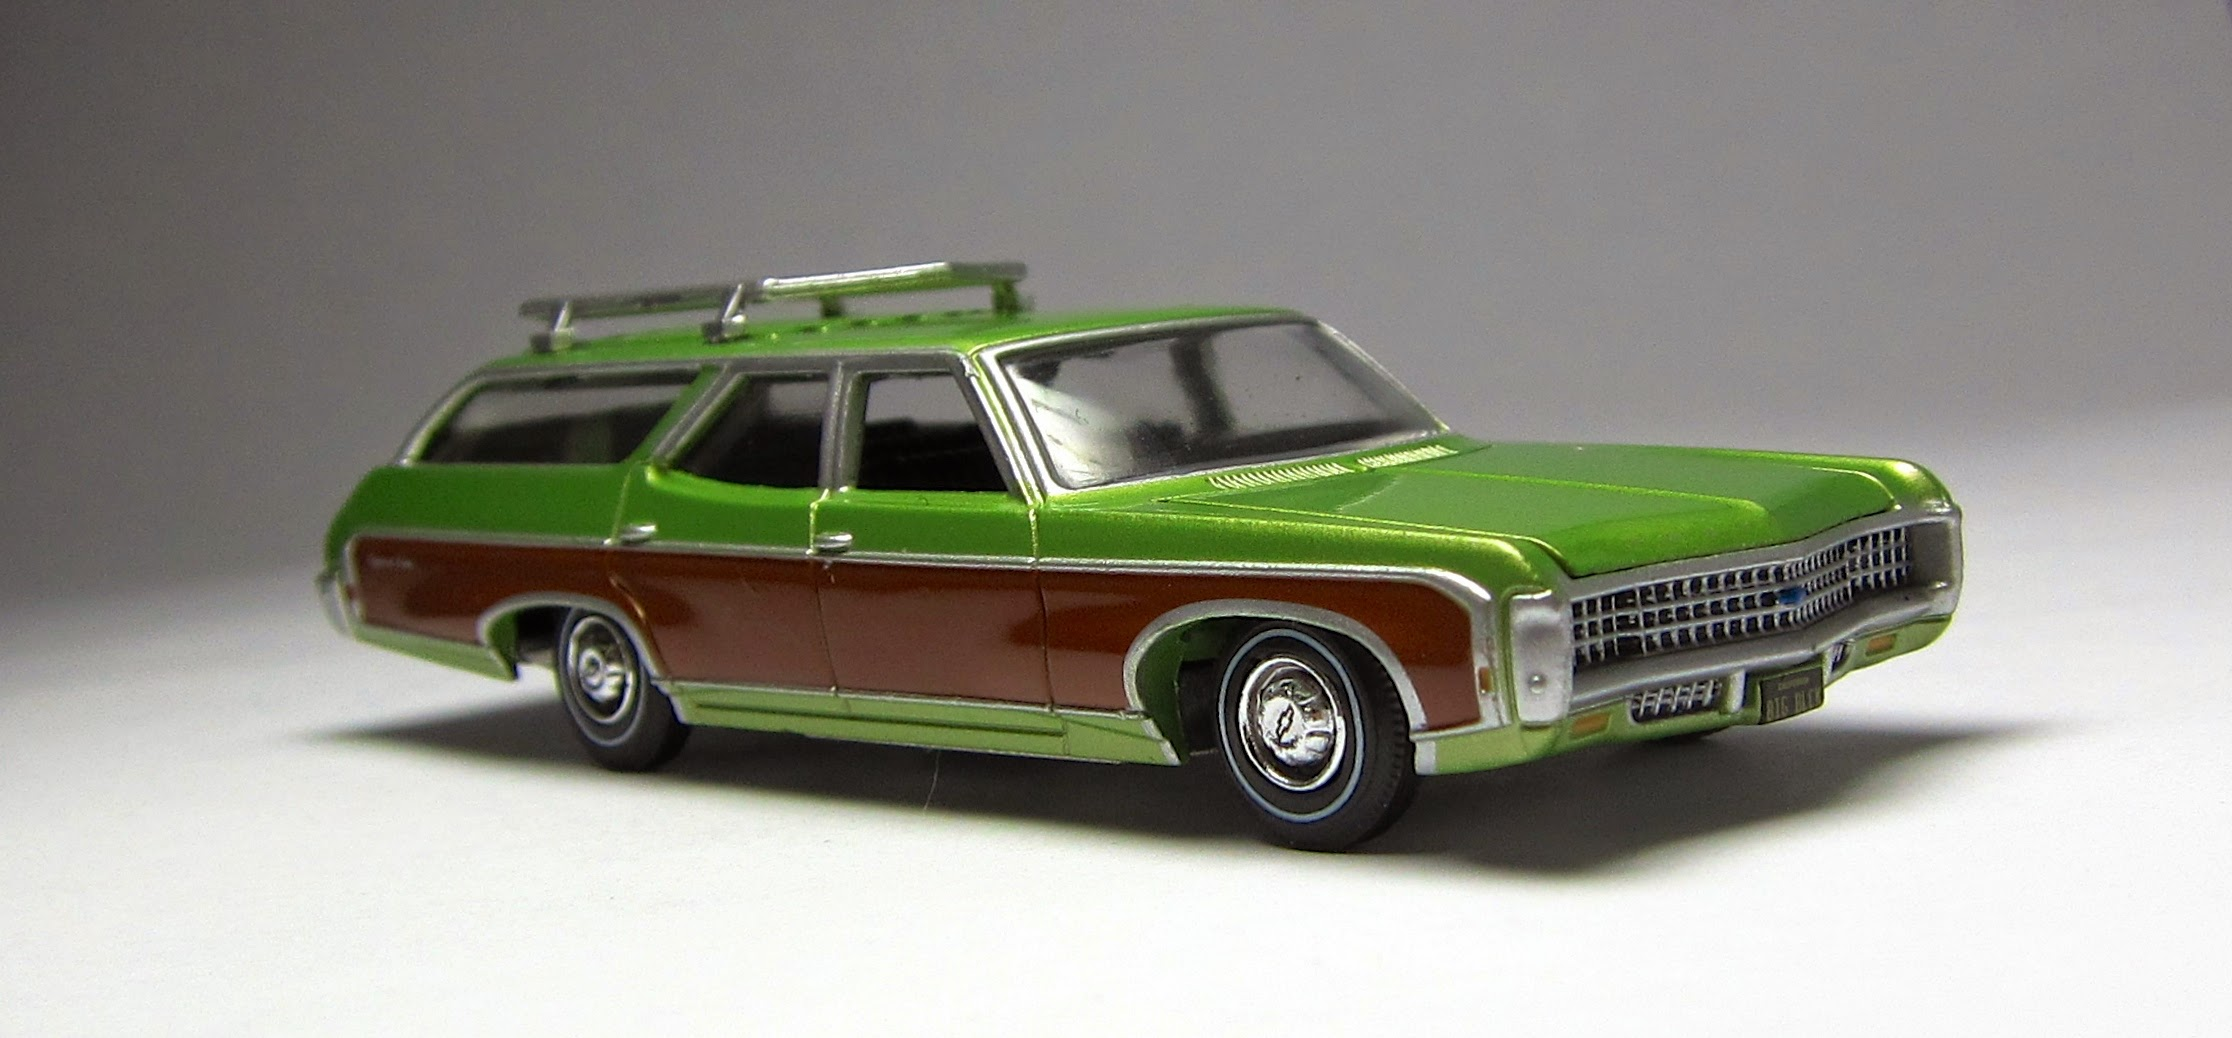 Cool is Cool is Cool The two new station wagons from Auto World